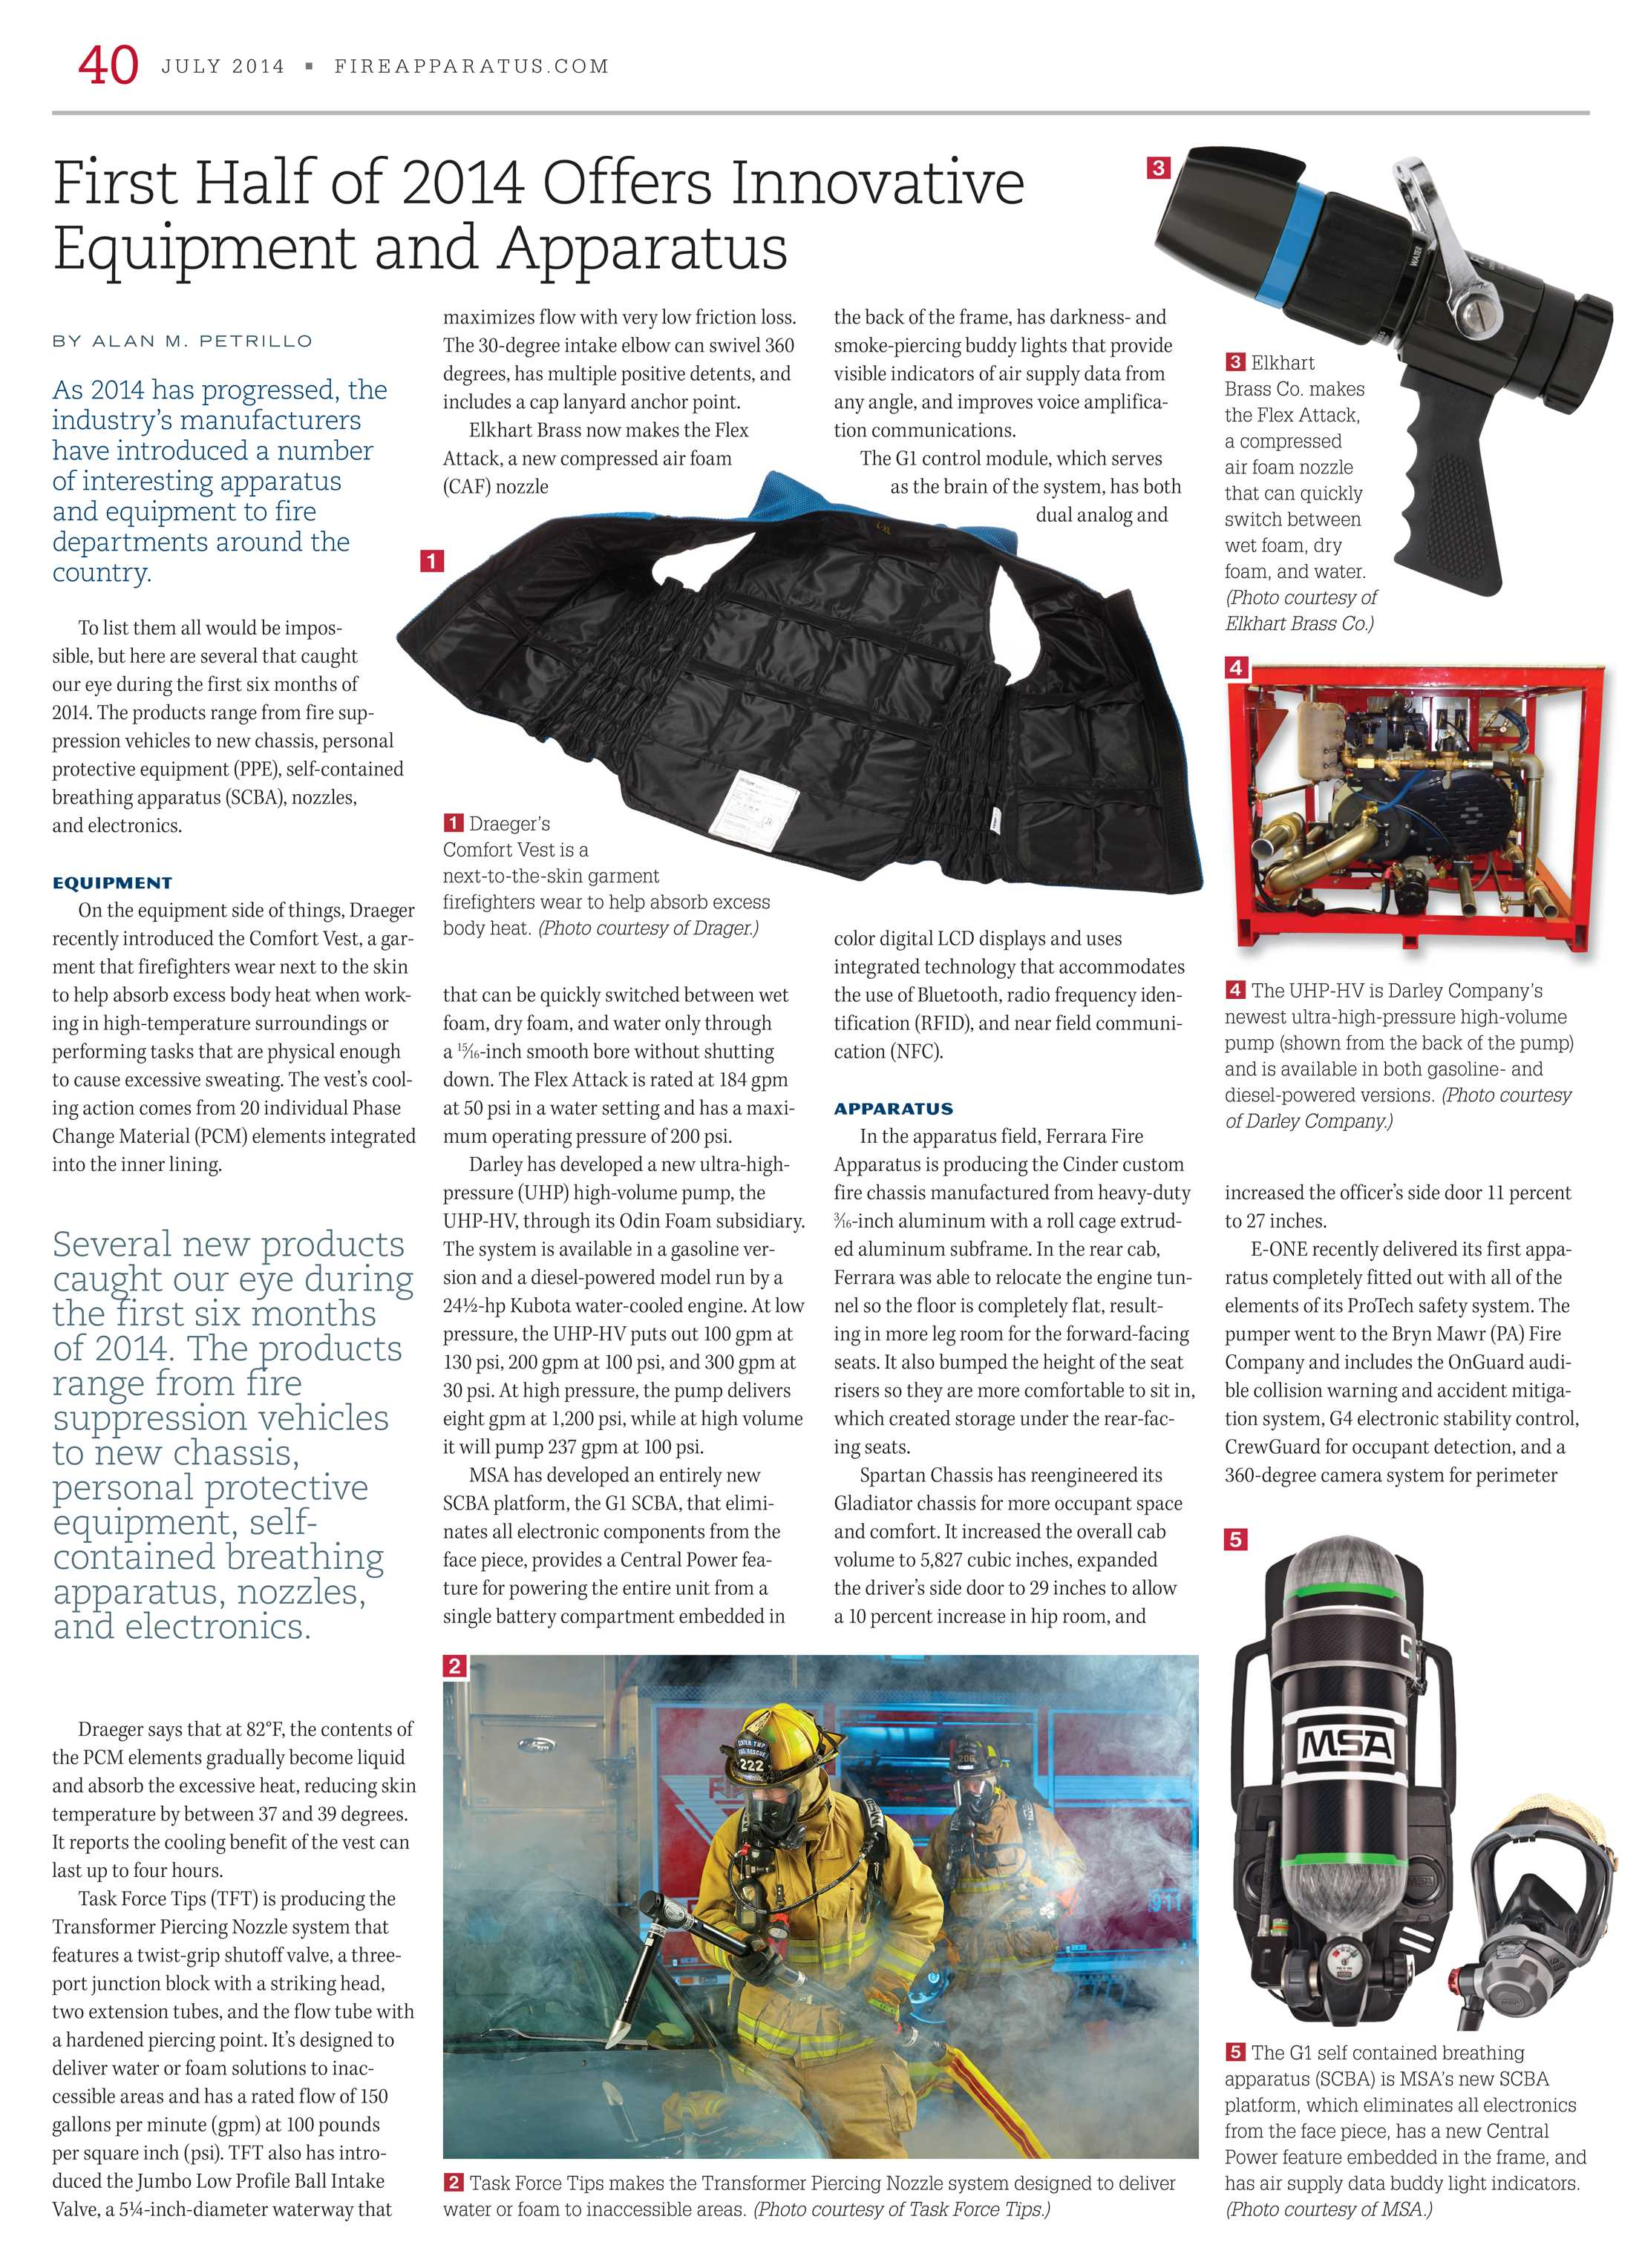 Fire Apparatus Magazine - July 2014 - page 40